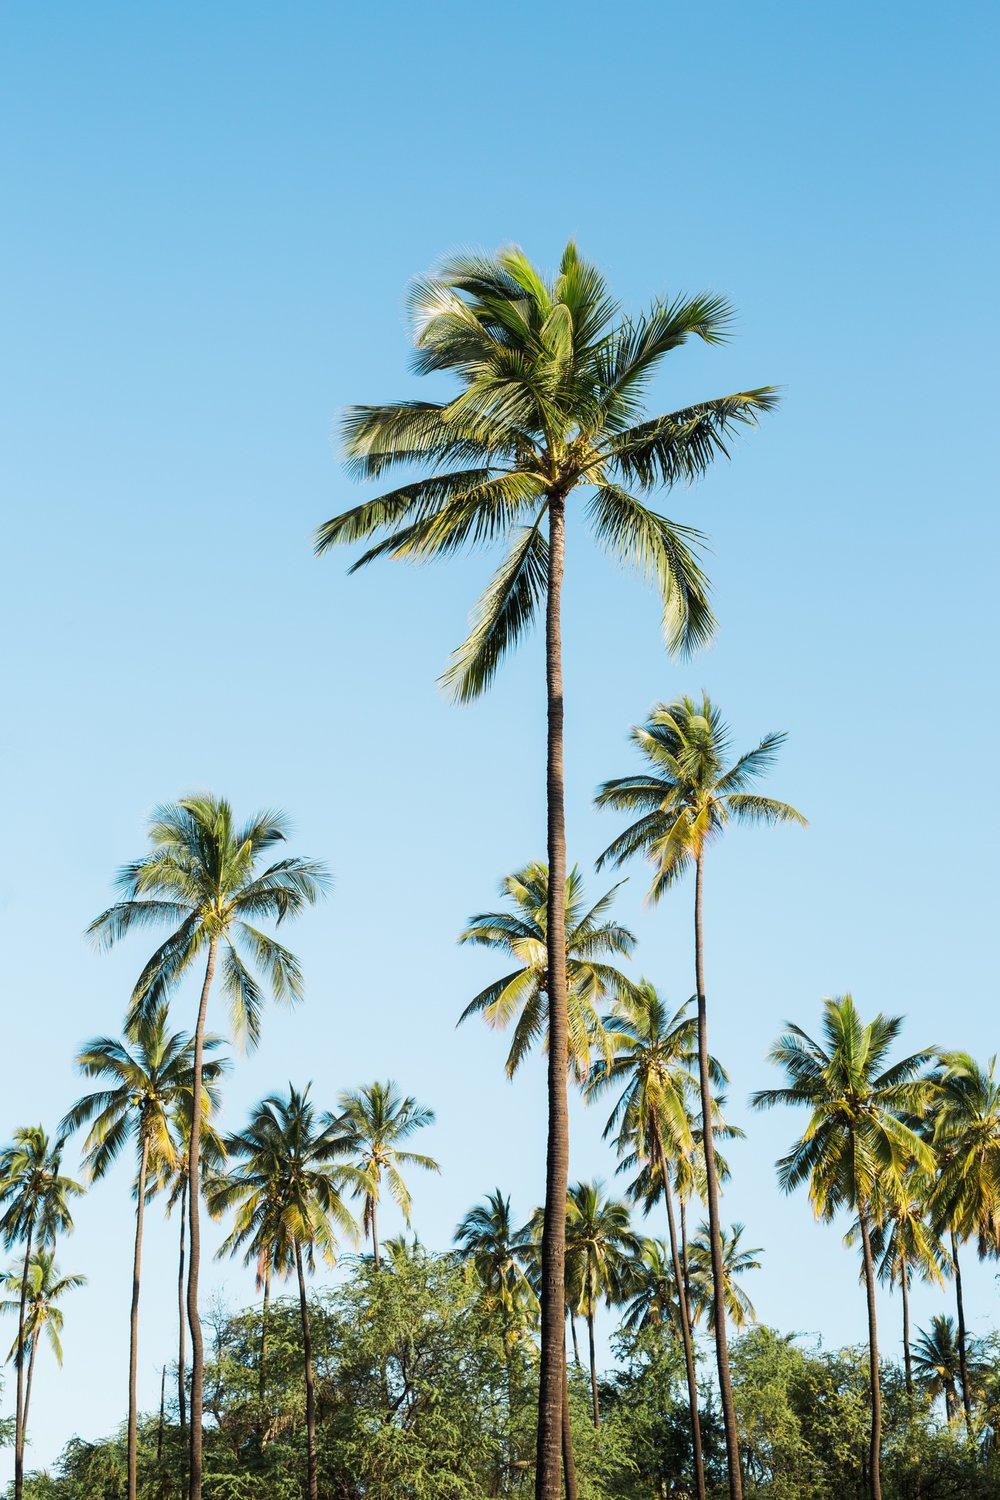 hawaii-travel-palm-trees-tropical-cameron-zegers.jpg